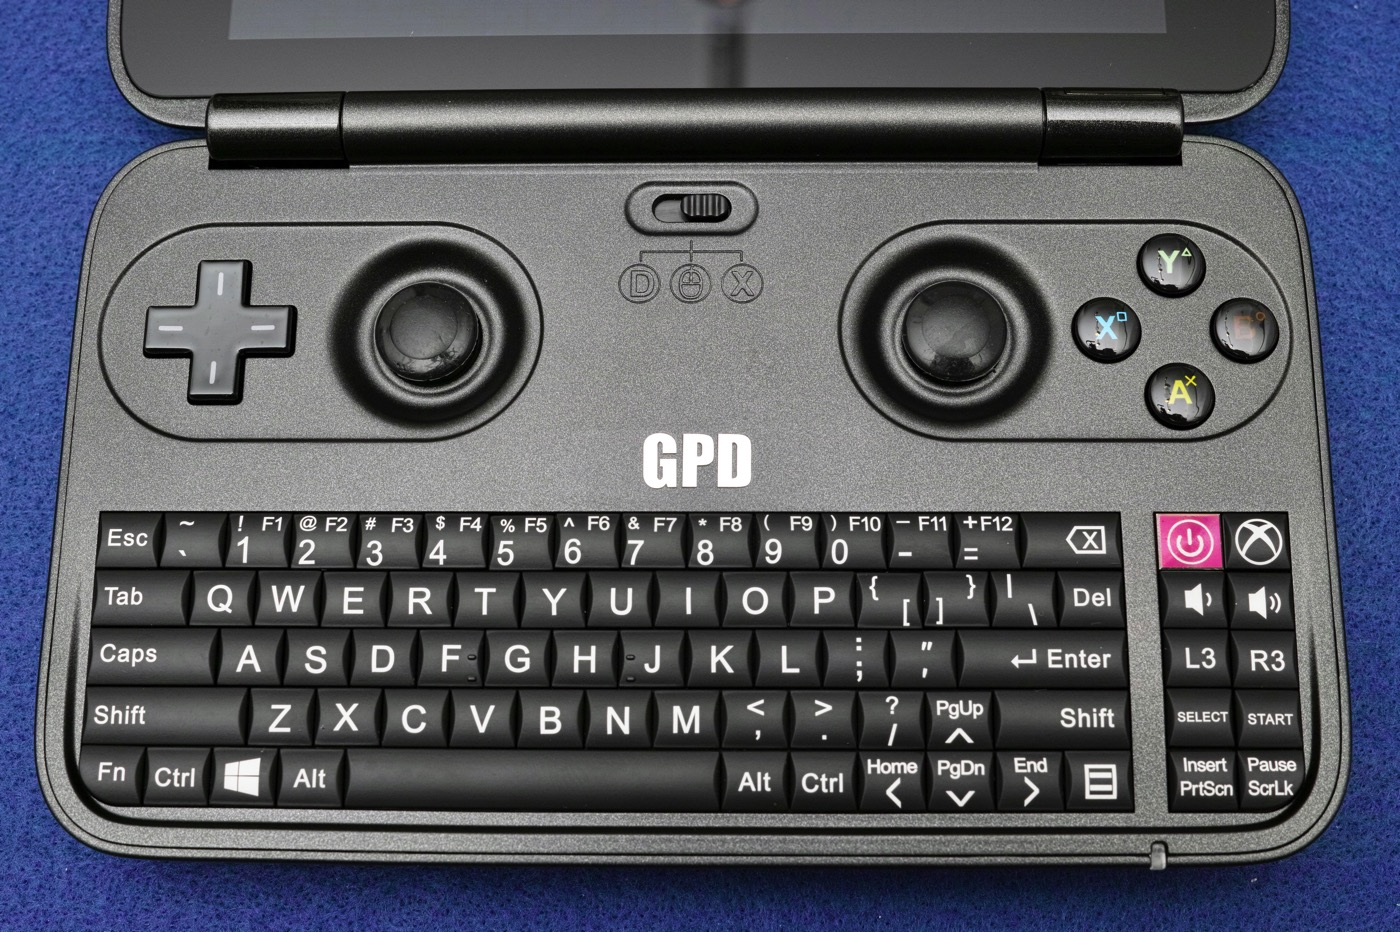 Gpd win sticky key 00003